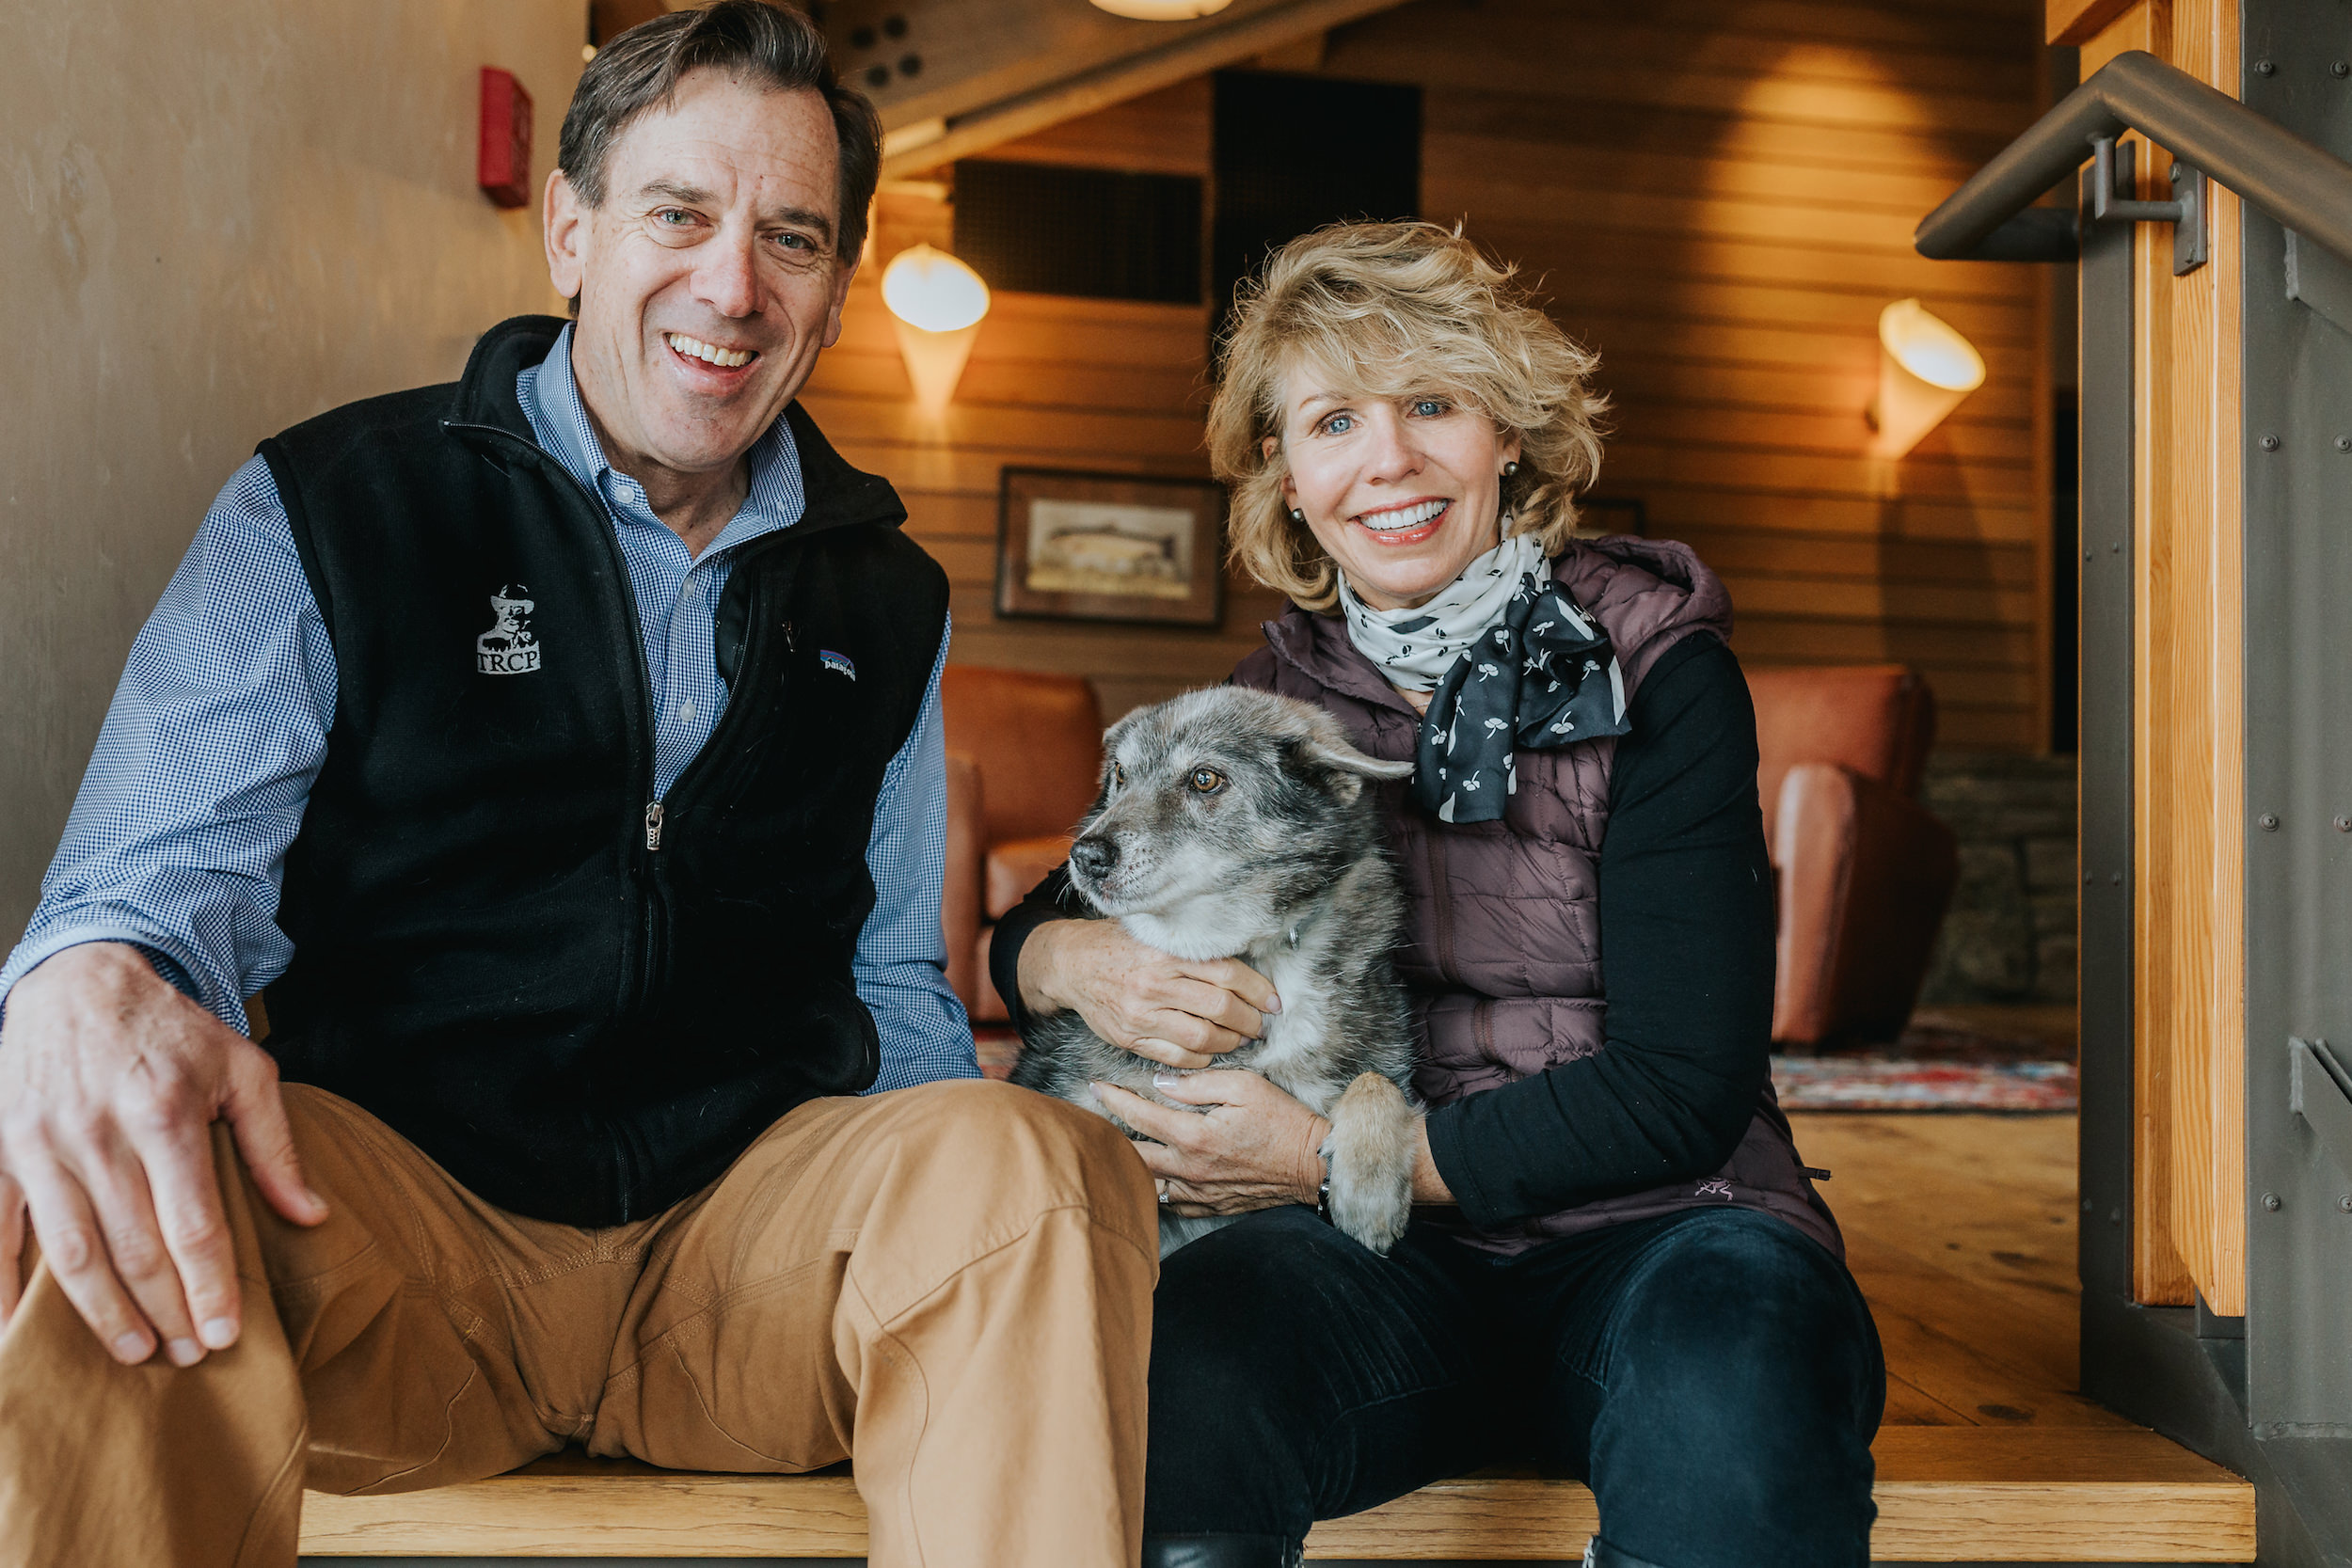 About Luther - Elected as a Teton County Commissioner in 2018, Luther has worked to balance smart growth with conservation and wildlife protection in rural communities for more than 25 years. Founder of the Sonoran Institute focused on conservation and community in the West, he has since become an invaluable local voice for several Jackson Hole nonprofits supporting wildlife, community development, and the outdoors.Learn More